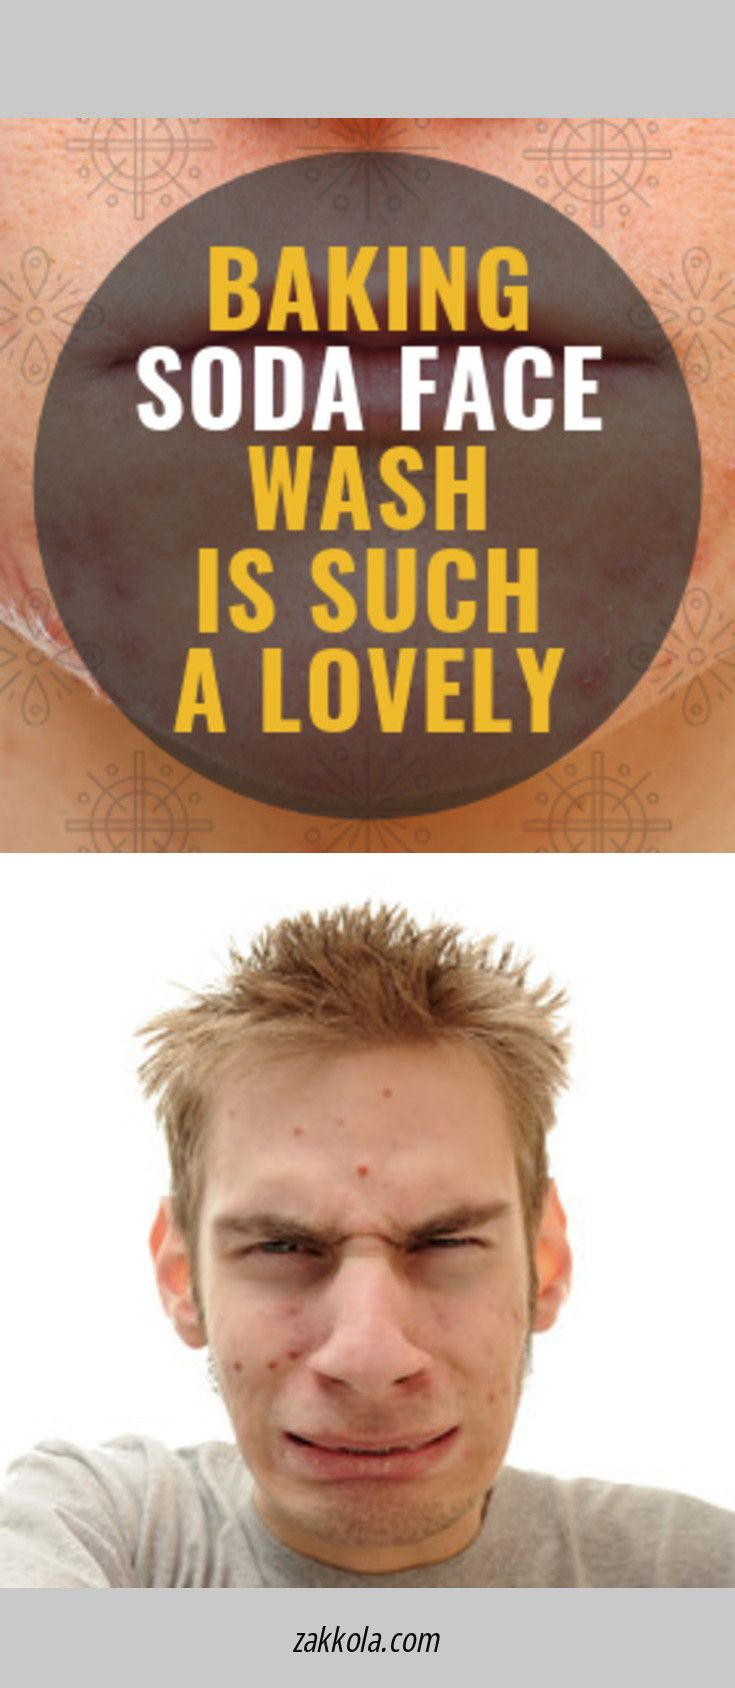 Find more information on acne. Just click on the …